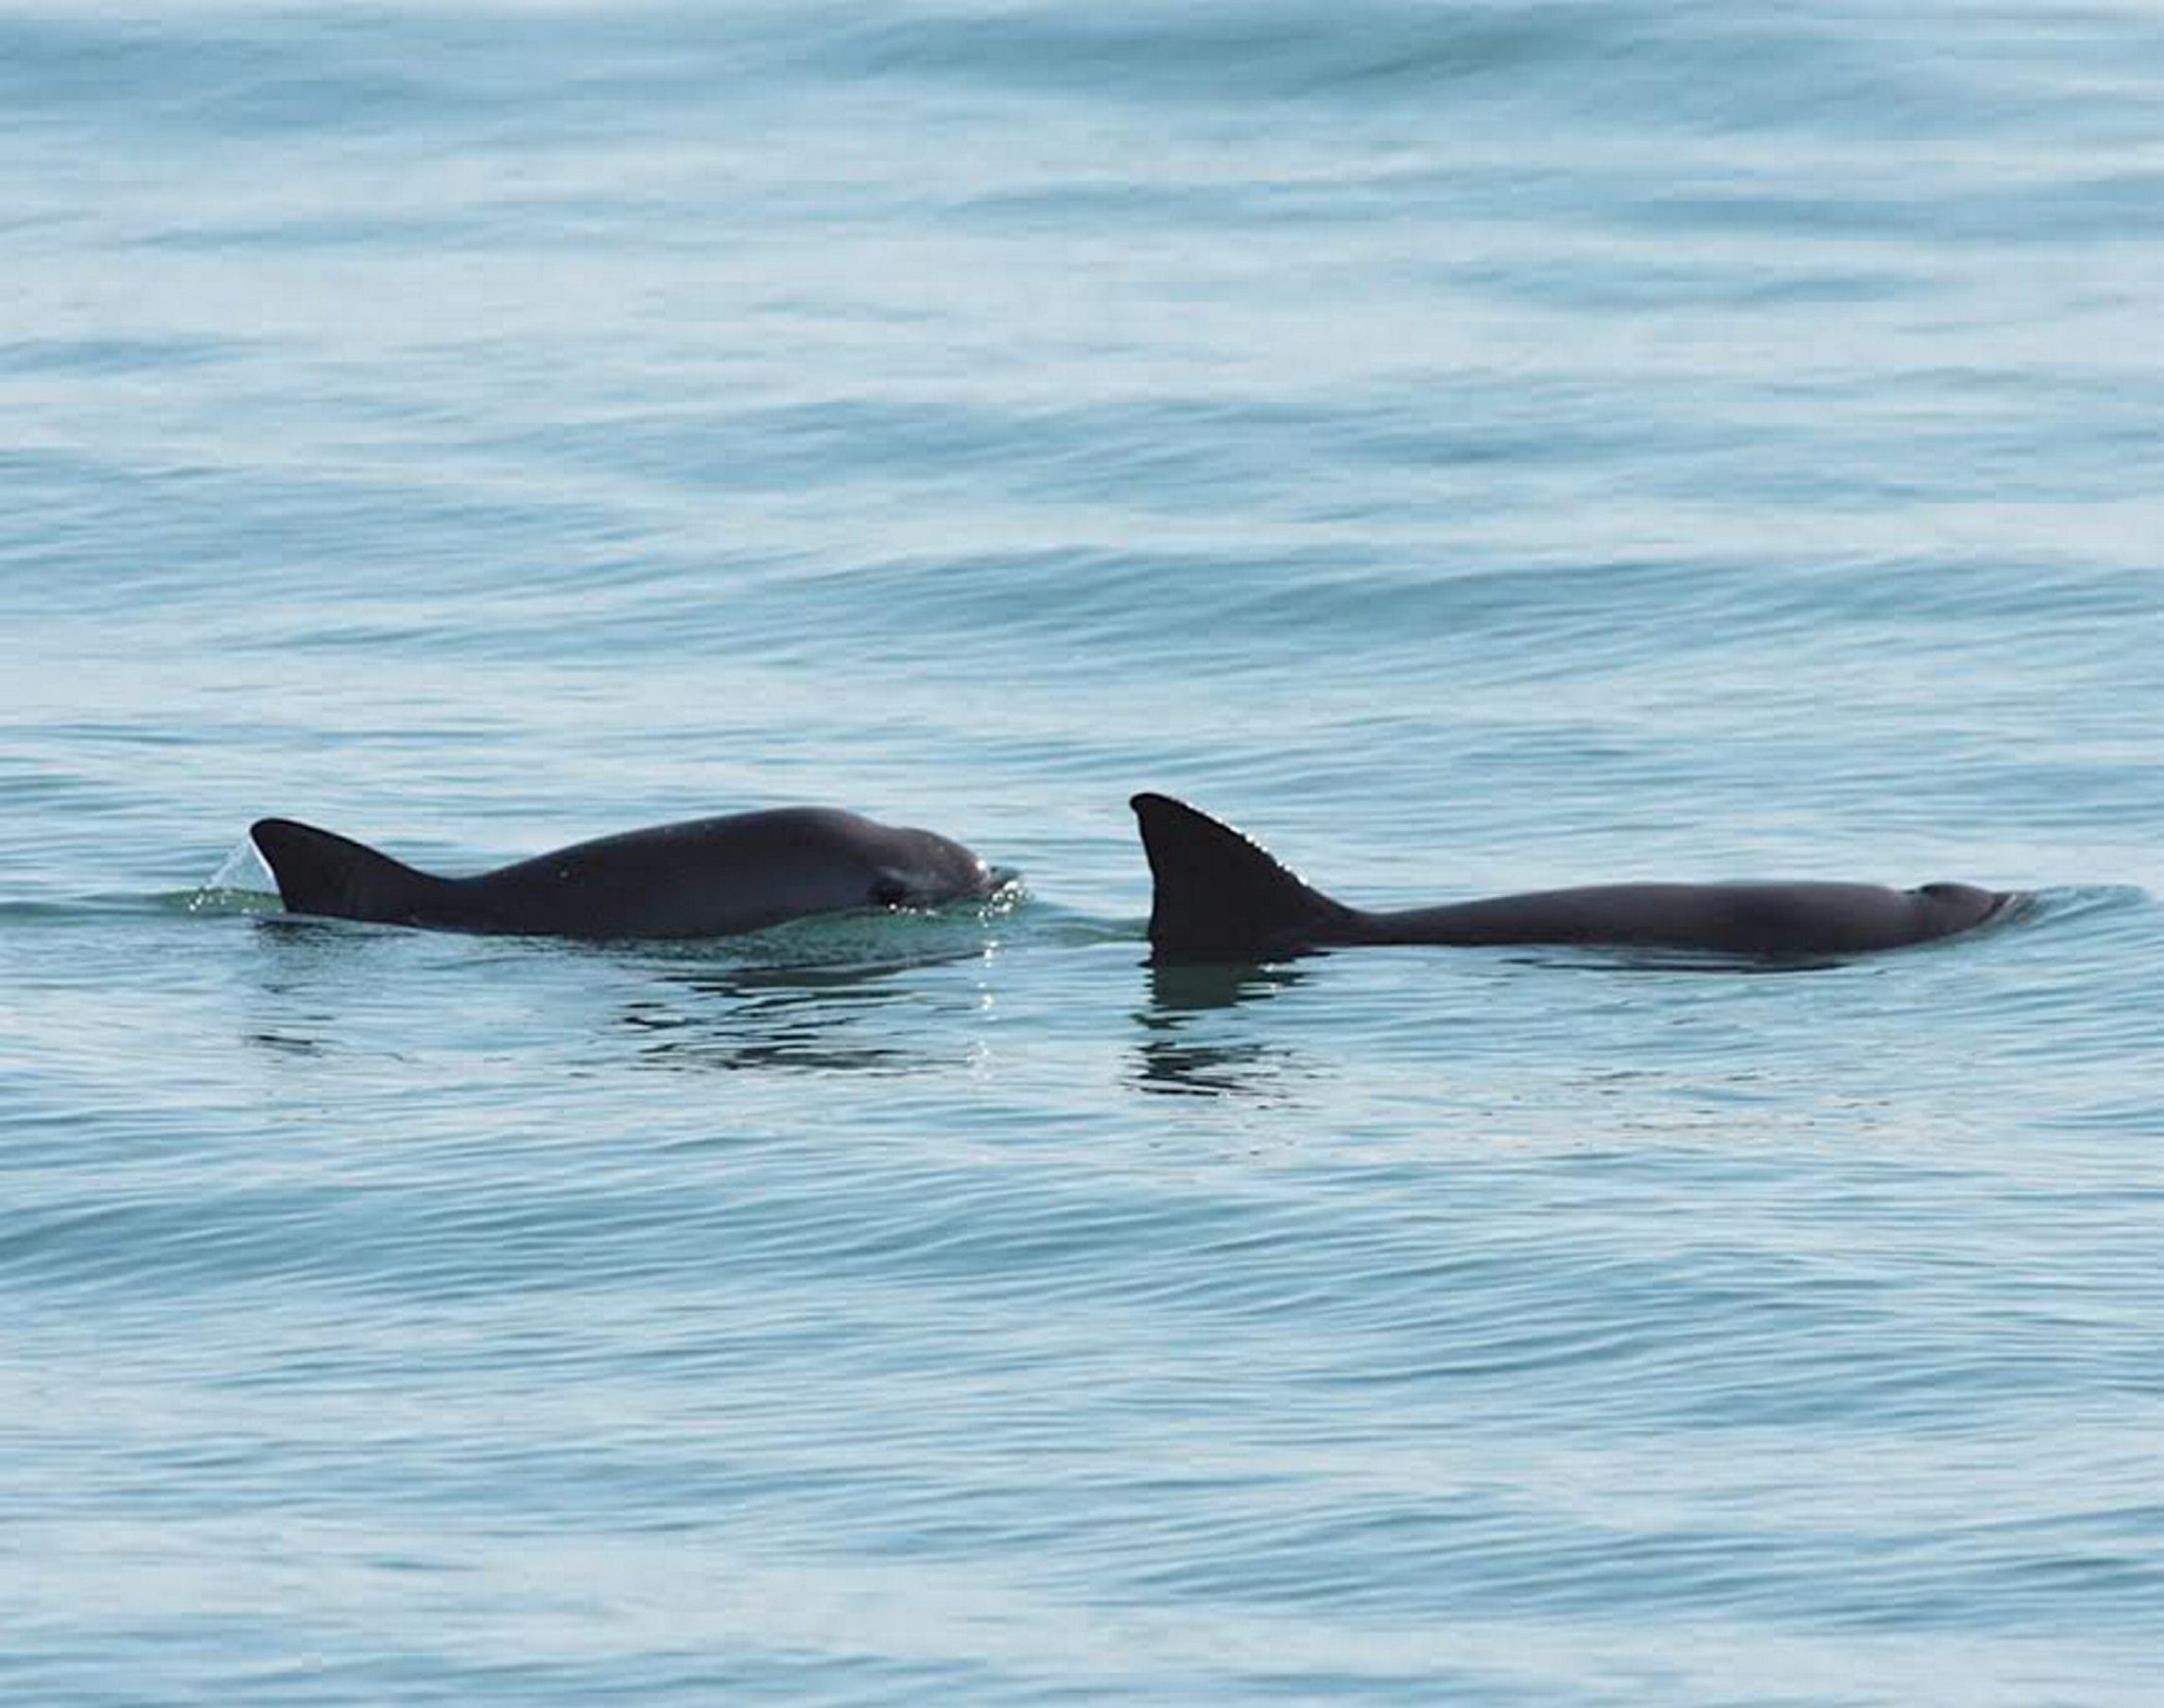 Vaquita, Northern Gulf of California. Vaquitas, a small species of porpoise, are the world's most rare marine mammal - there are thought to be under 100 individuals remaining. Nearly 1 out of every 5 vaquita are killed by gillnets used for illegally fishing another endangered sea creature, the totoaba, which is valued for its swim bladder.